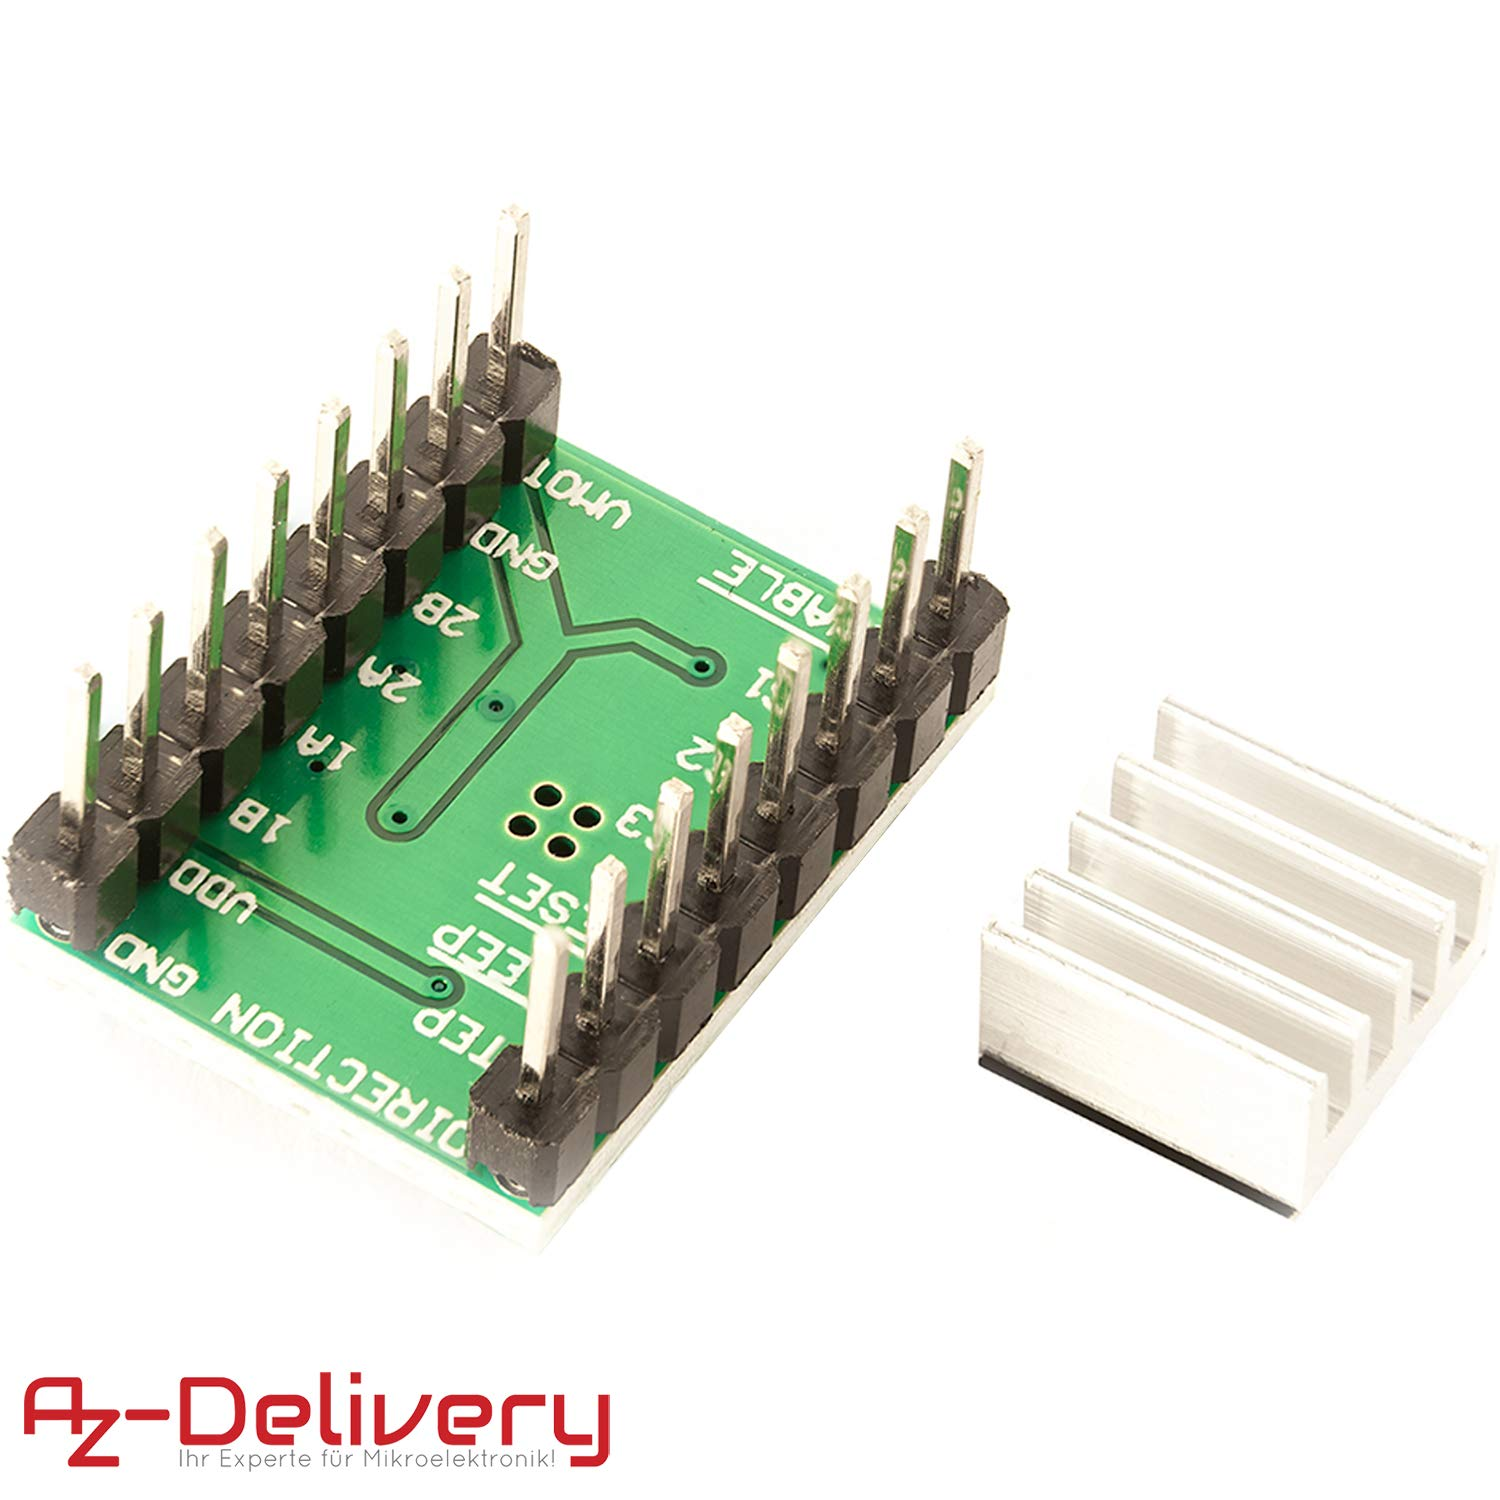 AZDelivery A4988 DMOS Stepper Motor Driver RepRap Ramps with Headers and Heatsink for Arduino including eBook